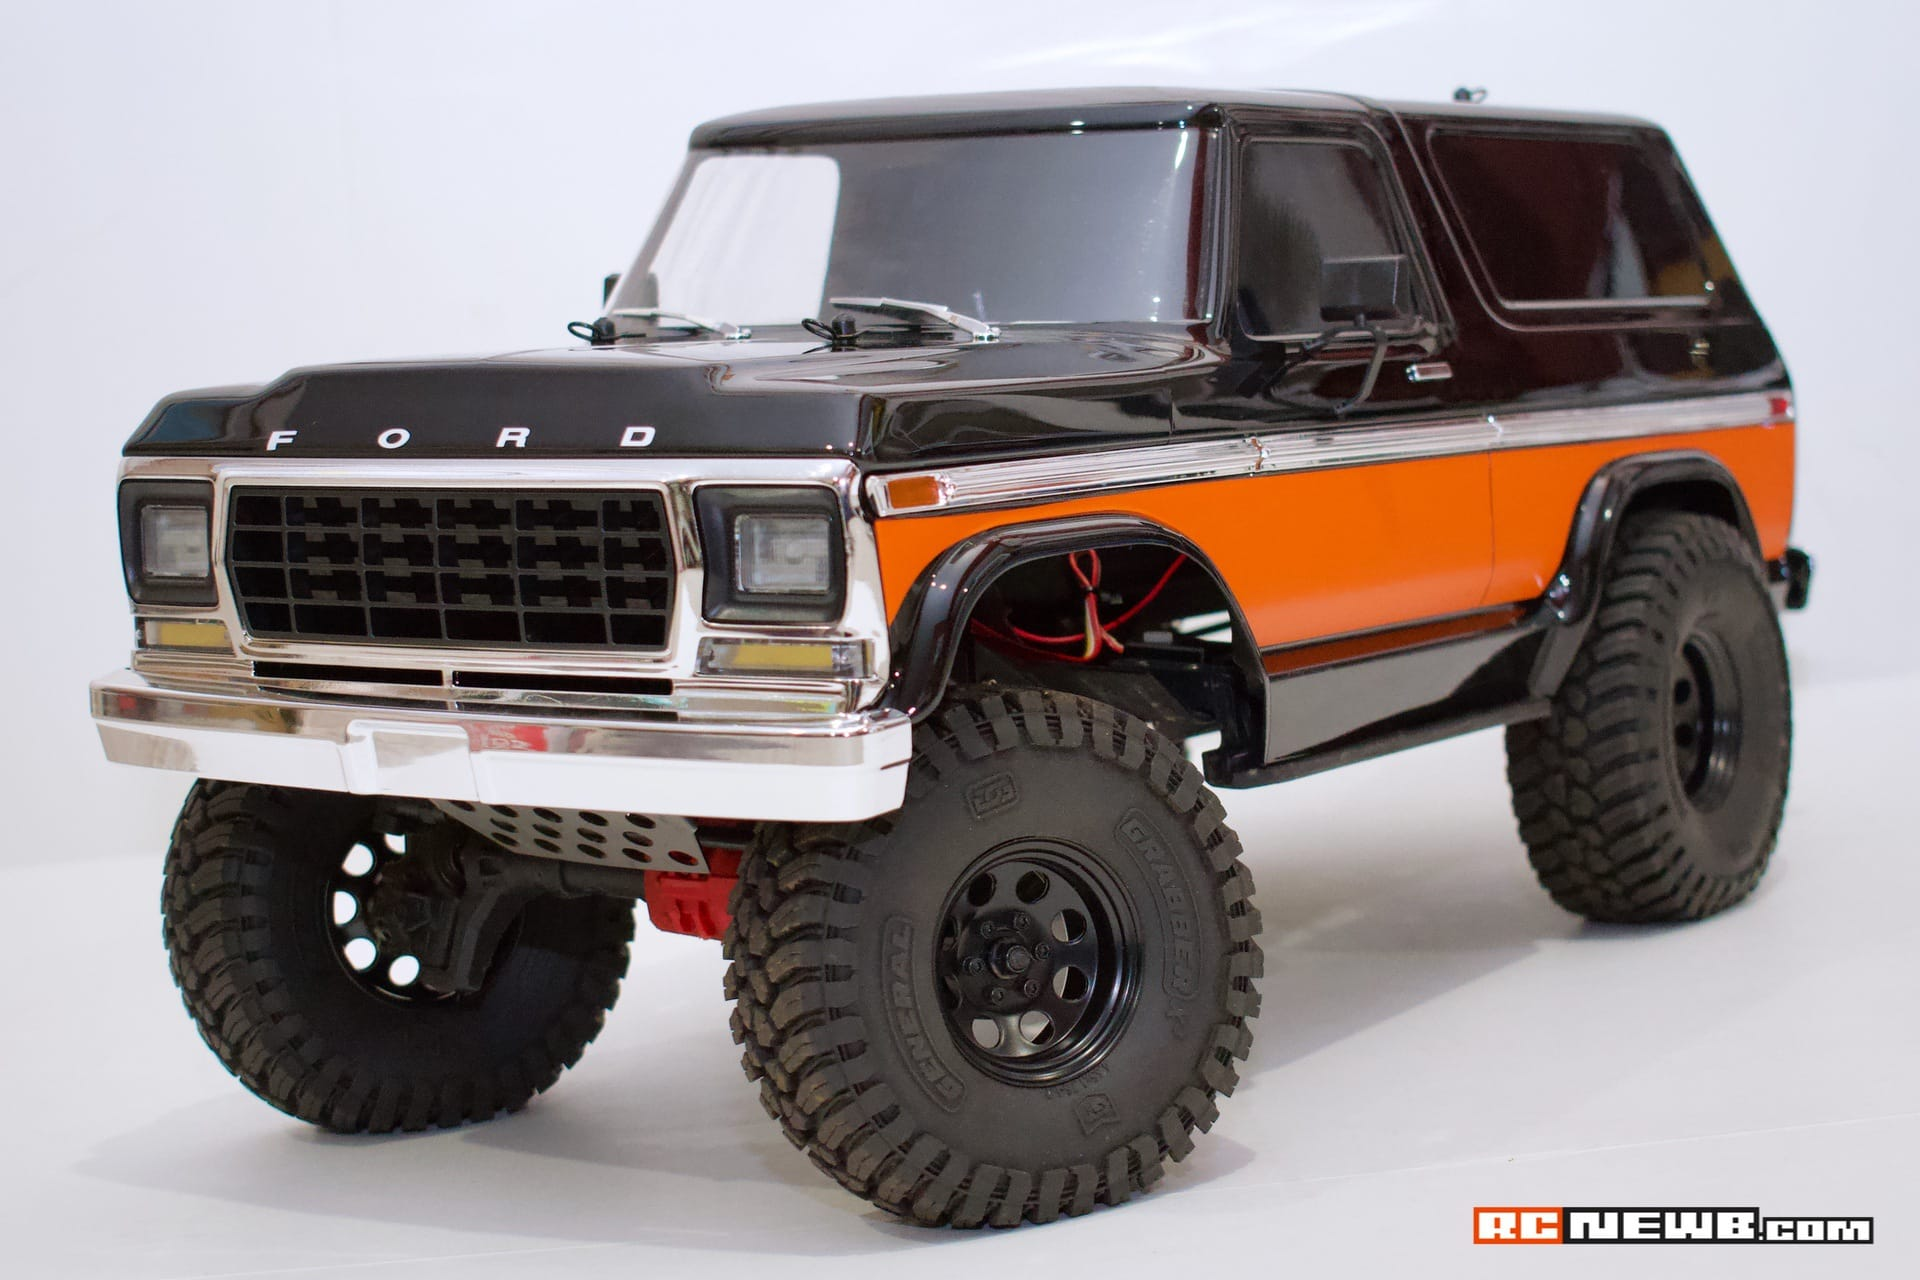 Review: Traxxas TRX-4 Ford Bronco Body Kit